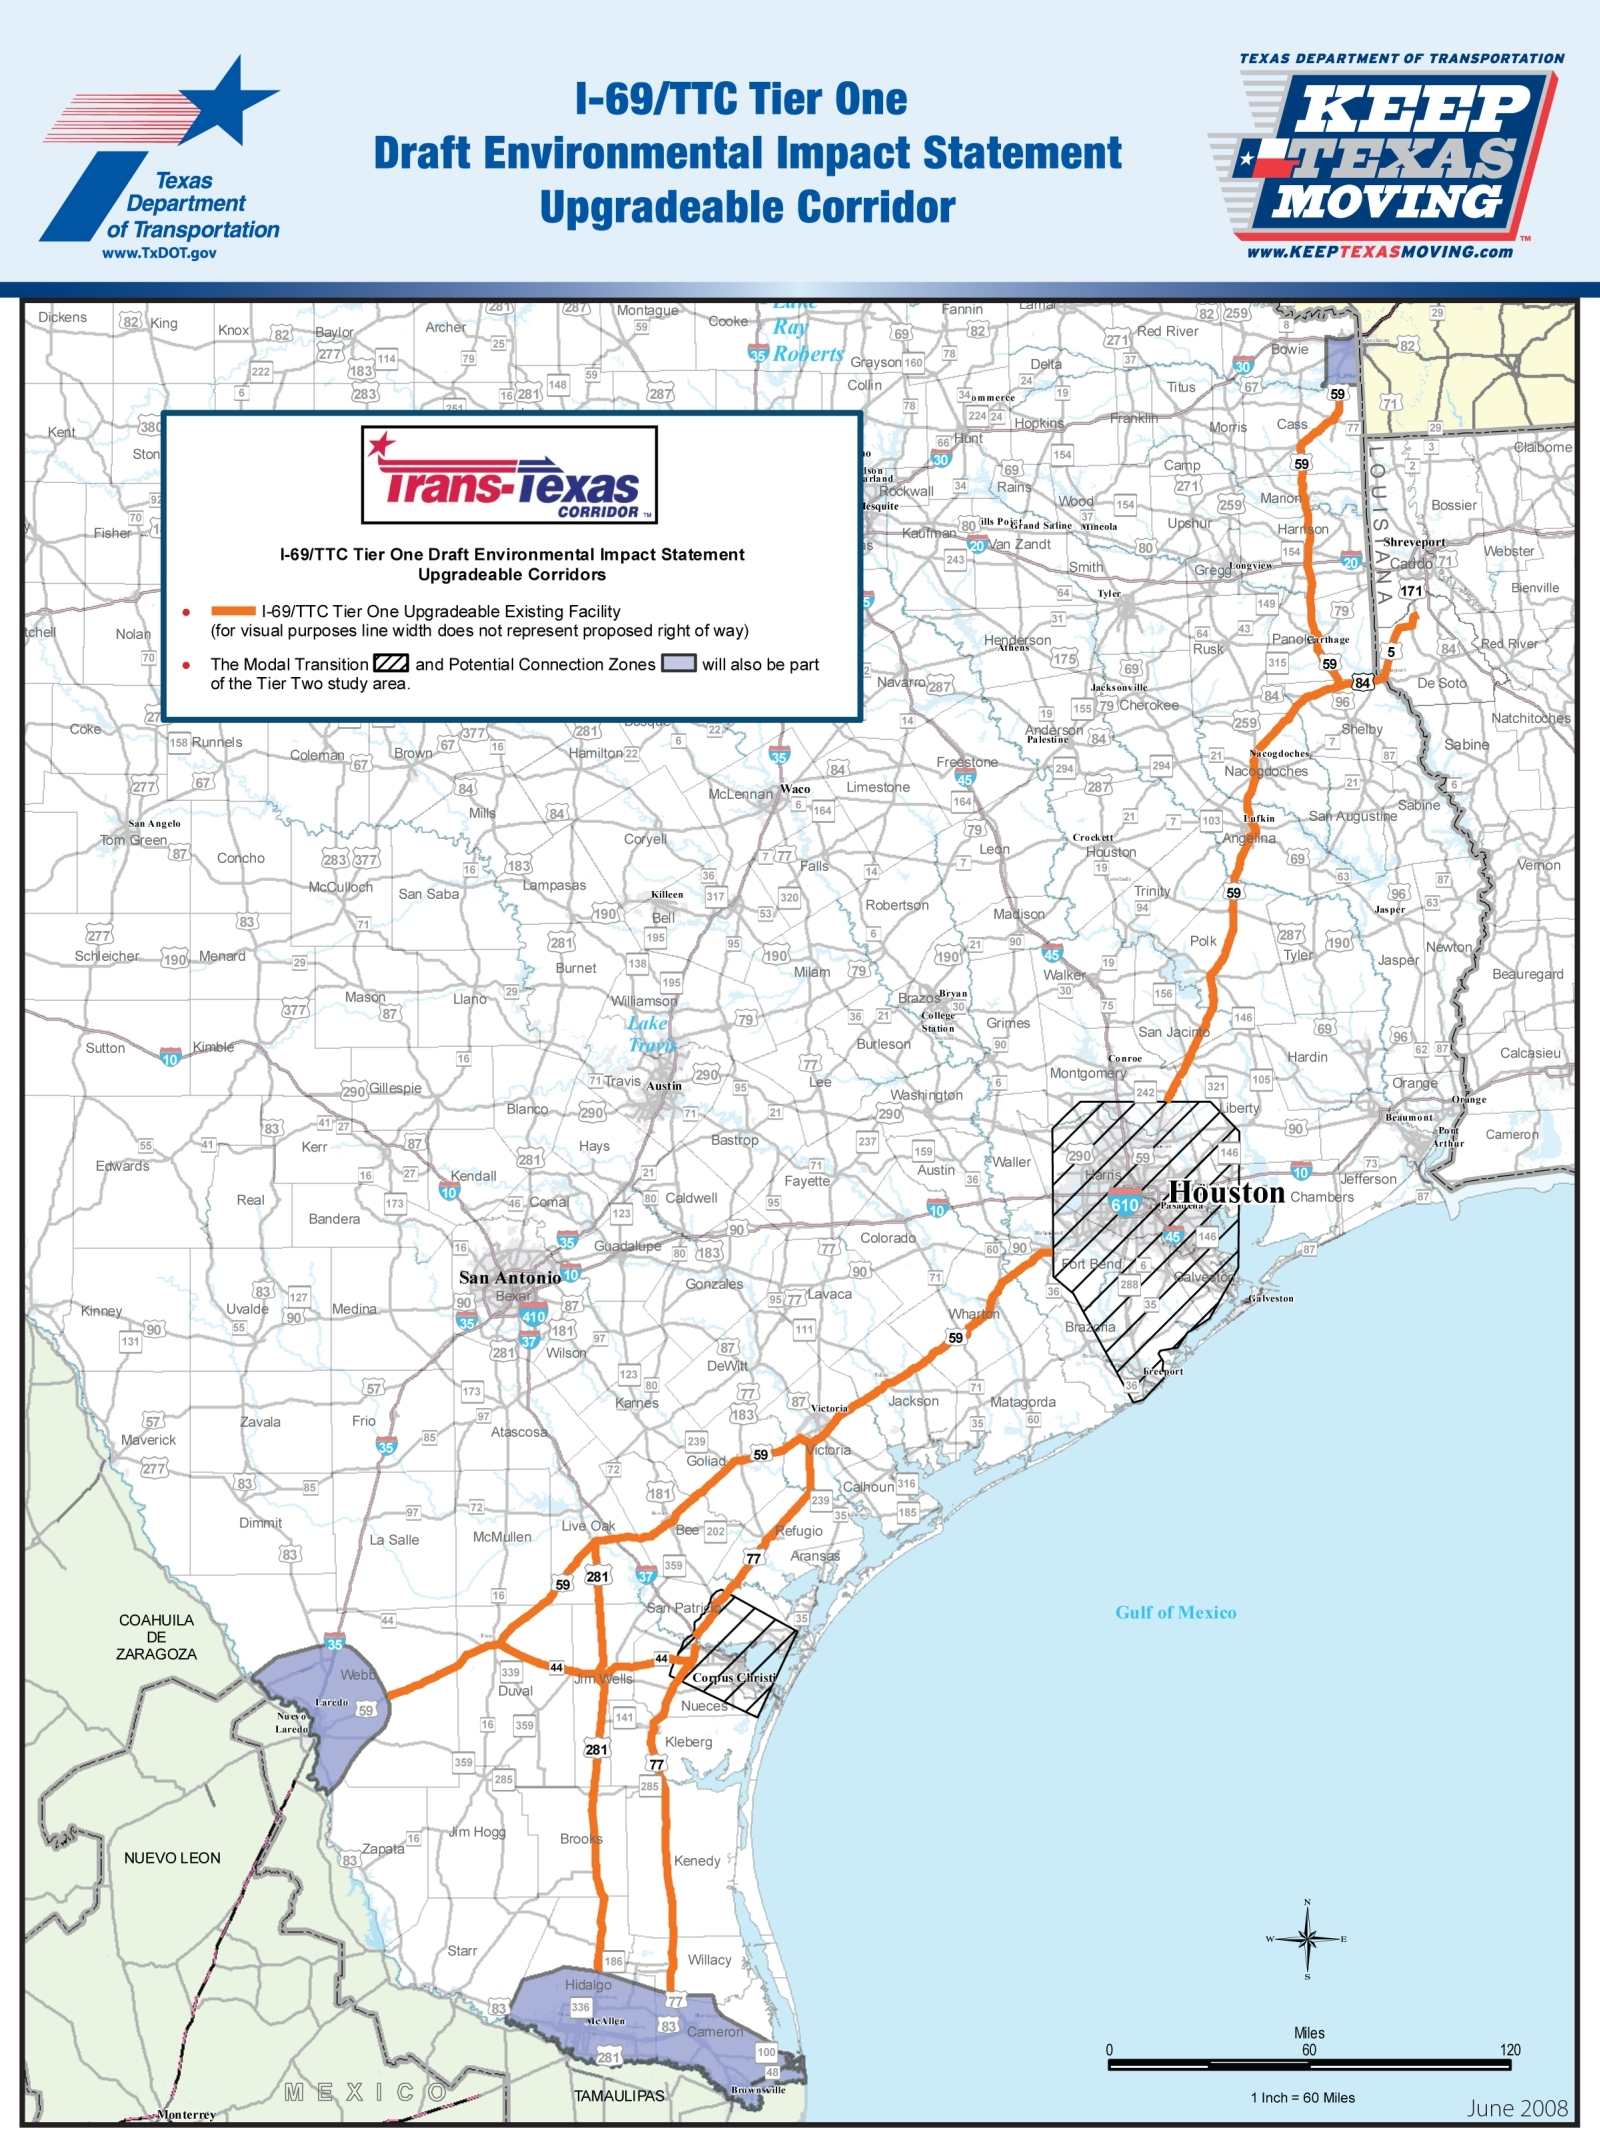 NAFTA Superhighways on i-69 tenn map, highway 69 map, i-69 road map, us interstate highway system, i 11 proposed route map, i-69 texas, proposed interstate highway map, i-69 mississippi, i-69 highway, i-269 mississippi map, i-69 indiana, i-69 expansion, interstate 69 map, i-69 maps kentucky, i-69 map arkansas, proposed interstate highways, interstate sioux falls map,